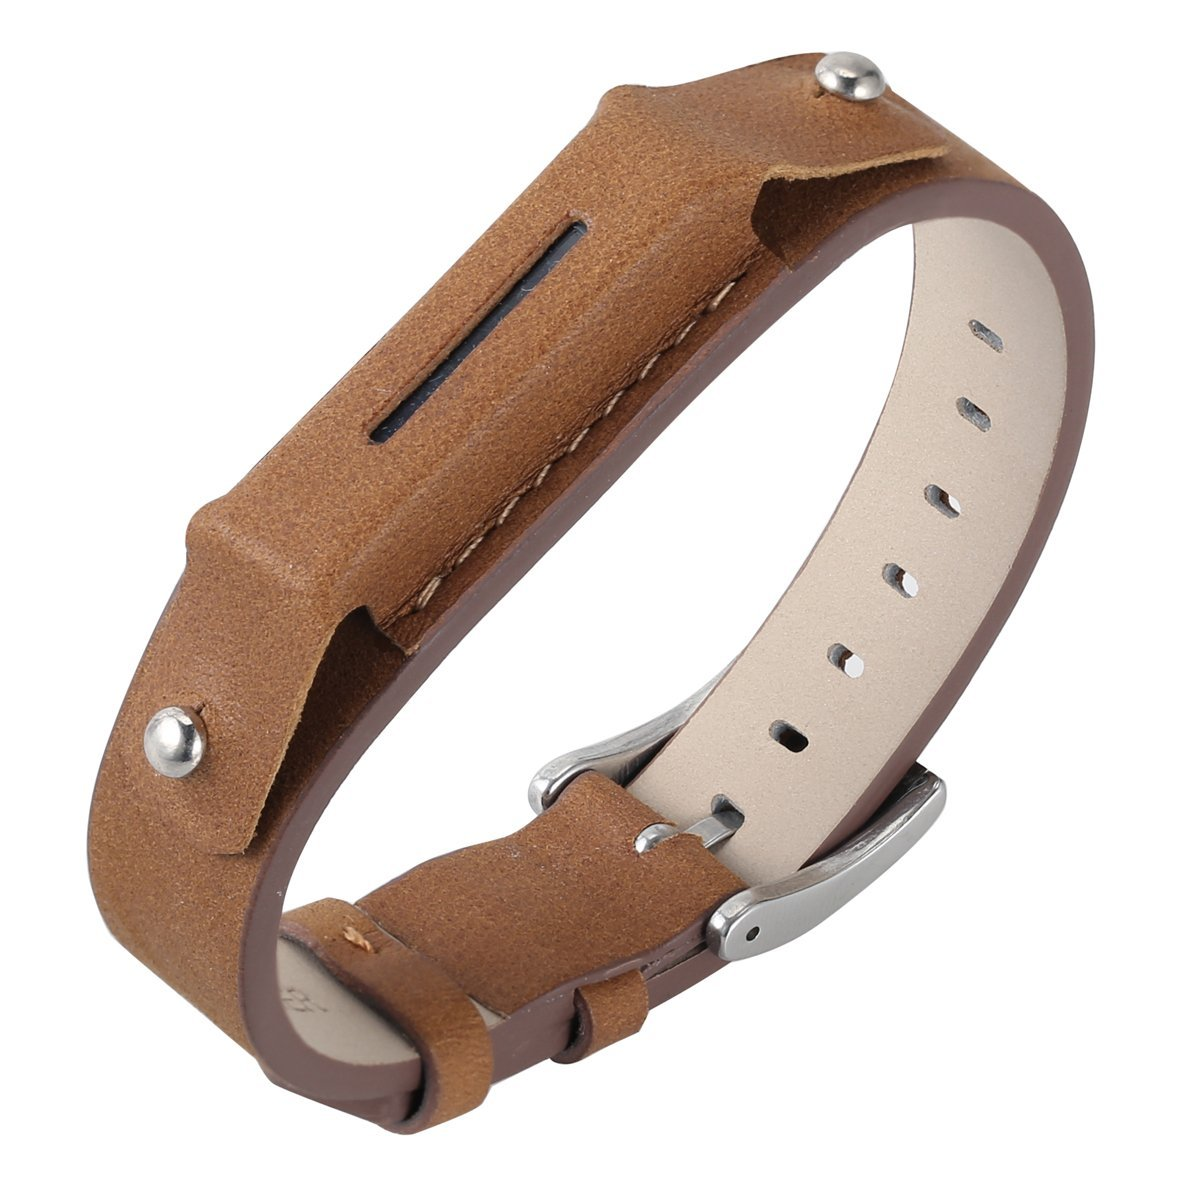 Fitbit Flex 2 Bands Genuine Leather Replacement Bands Classic Sport Strap Accessories for 2016 Fitbit Flex 2 Fitness tracker Coffee